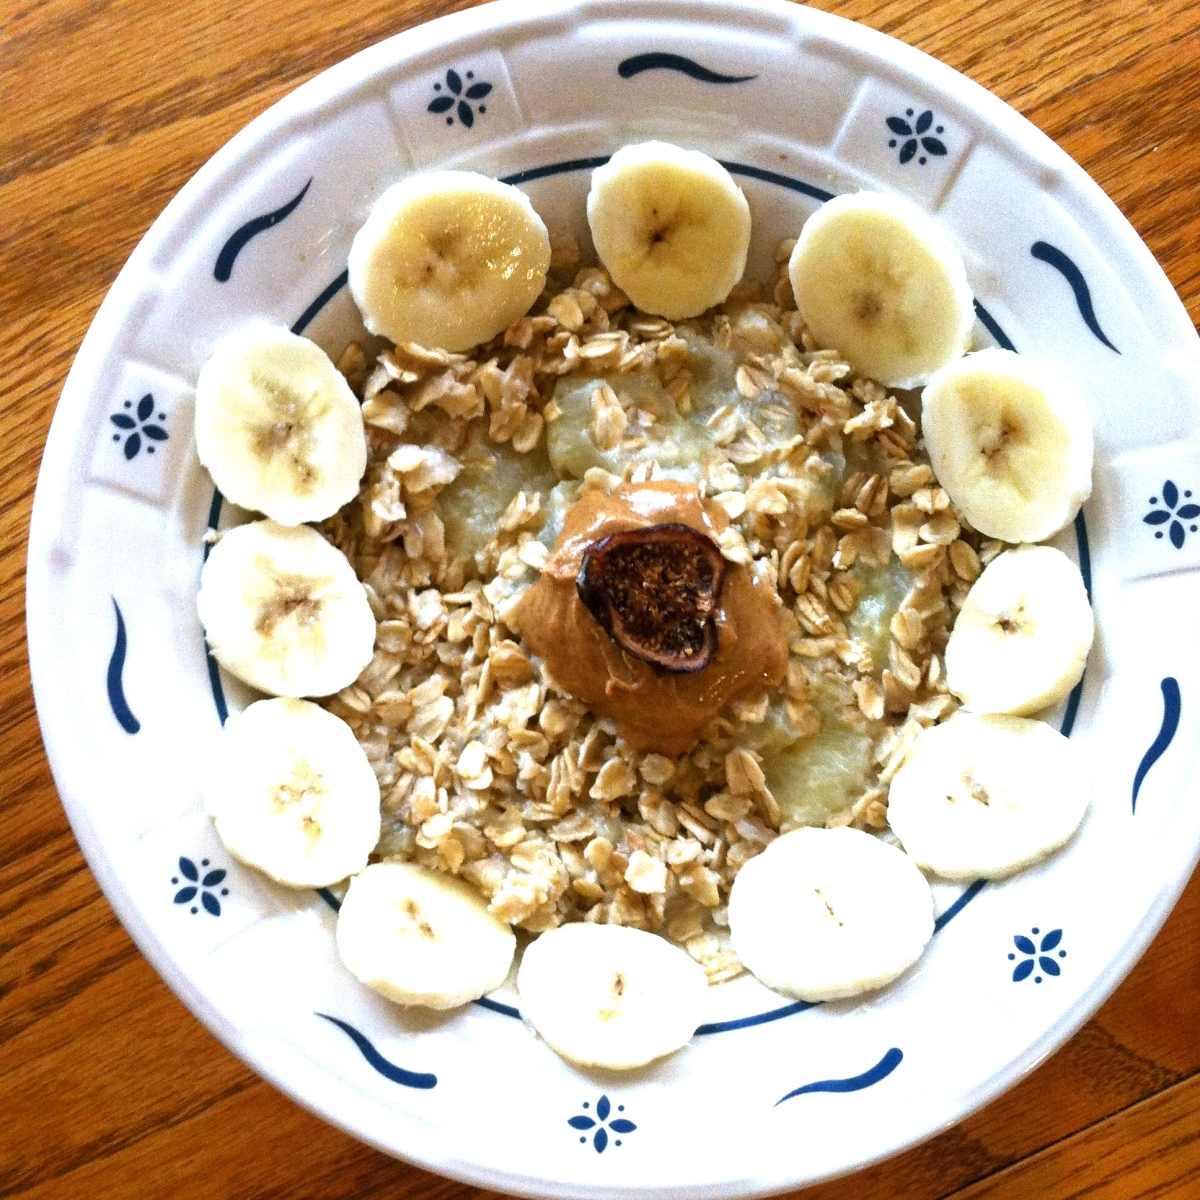 almond butter & banana oatmeal